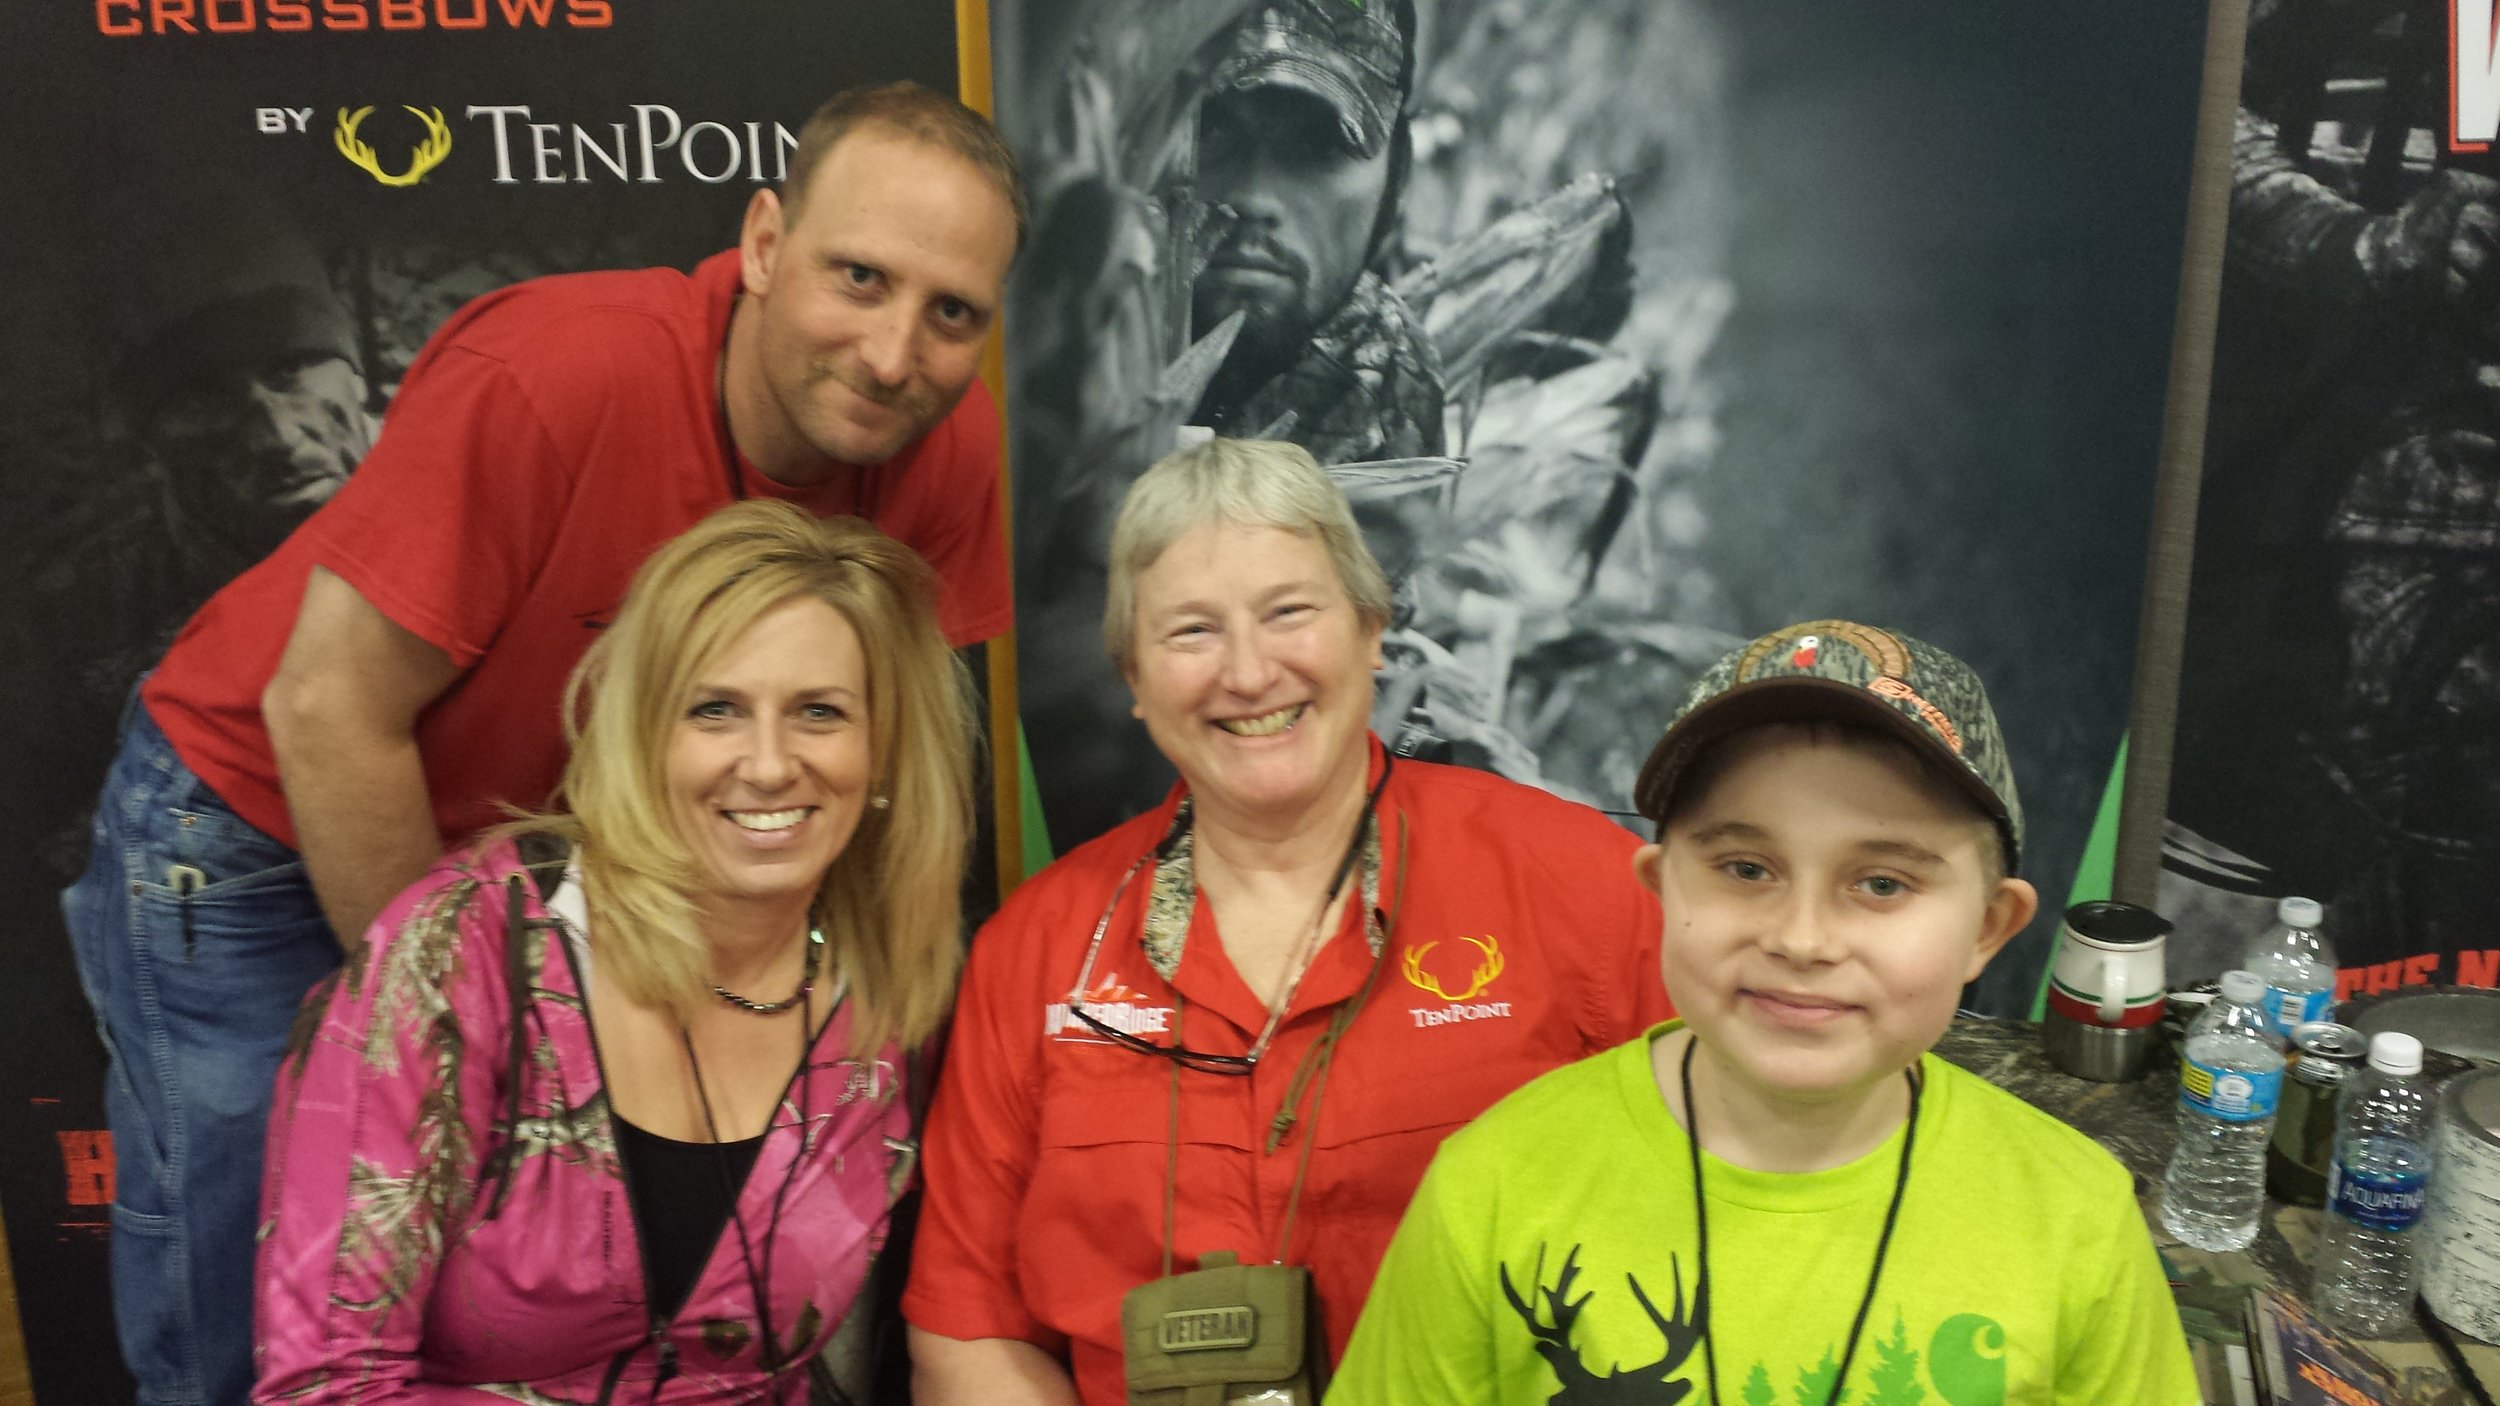 Always a pleasure to hang with our good friend Barb Terry from Ten Point Cross Bows.